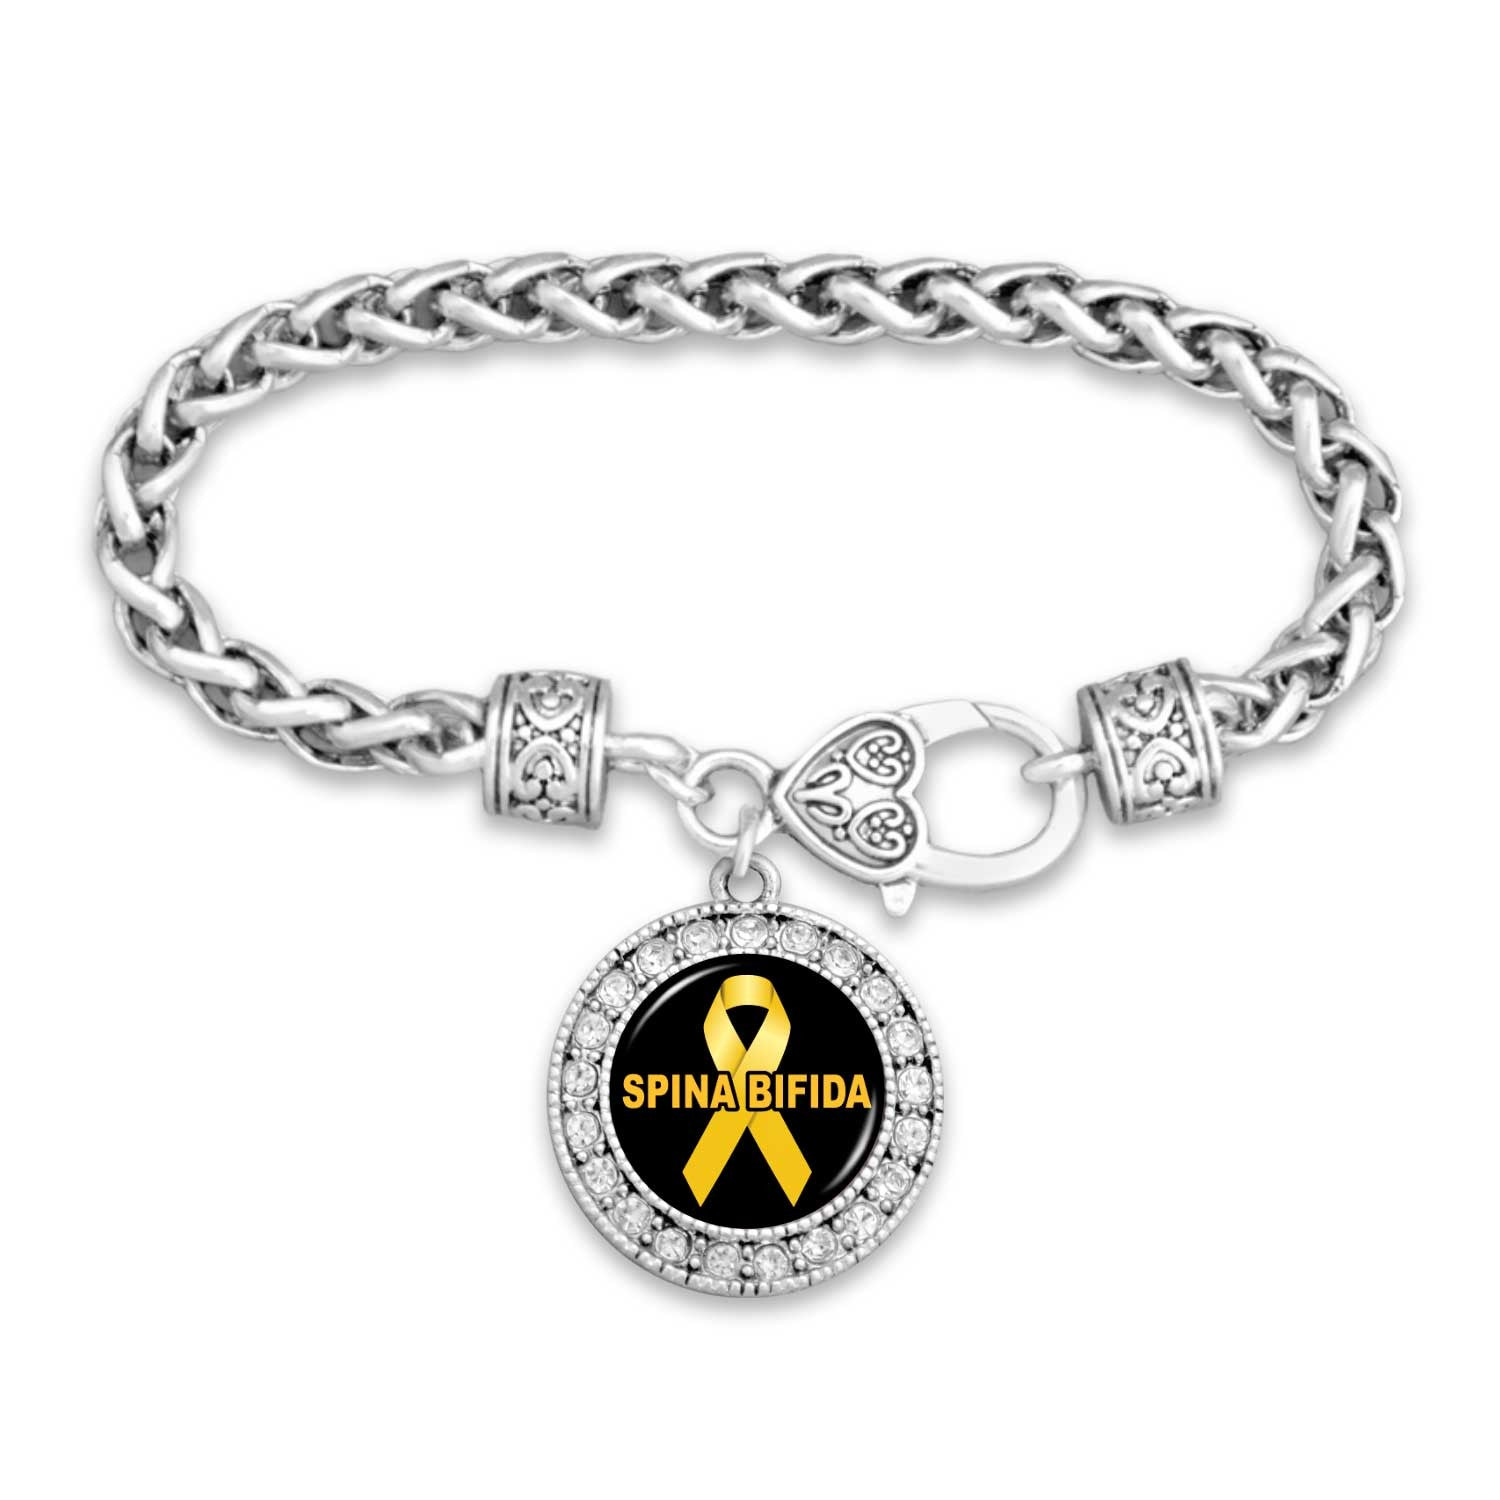 bracelet spina adenosarcoma awareness survivor by yellow eye liver cancer endometriosis bifida charm white pin lotus hamsa bladder osteosarcoma ribbon elephant lung gift